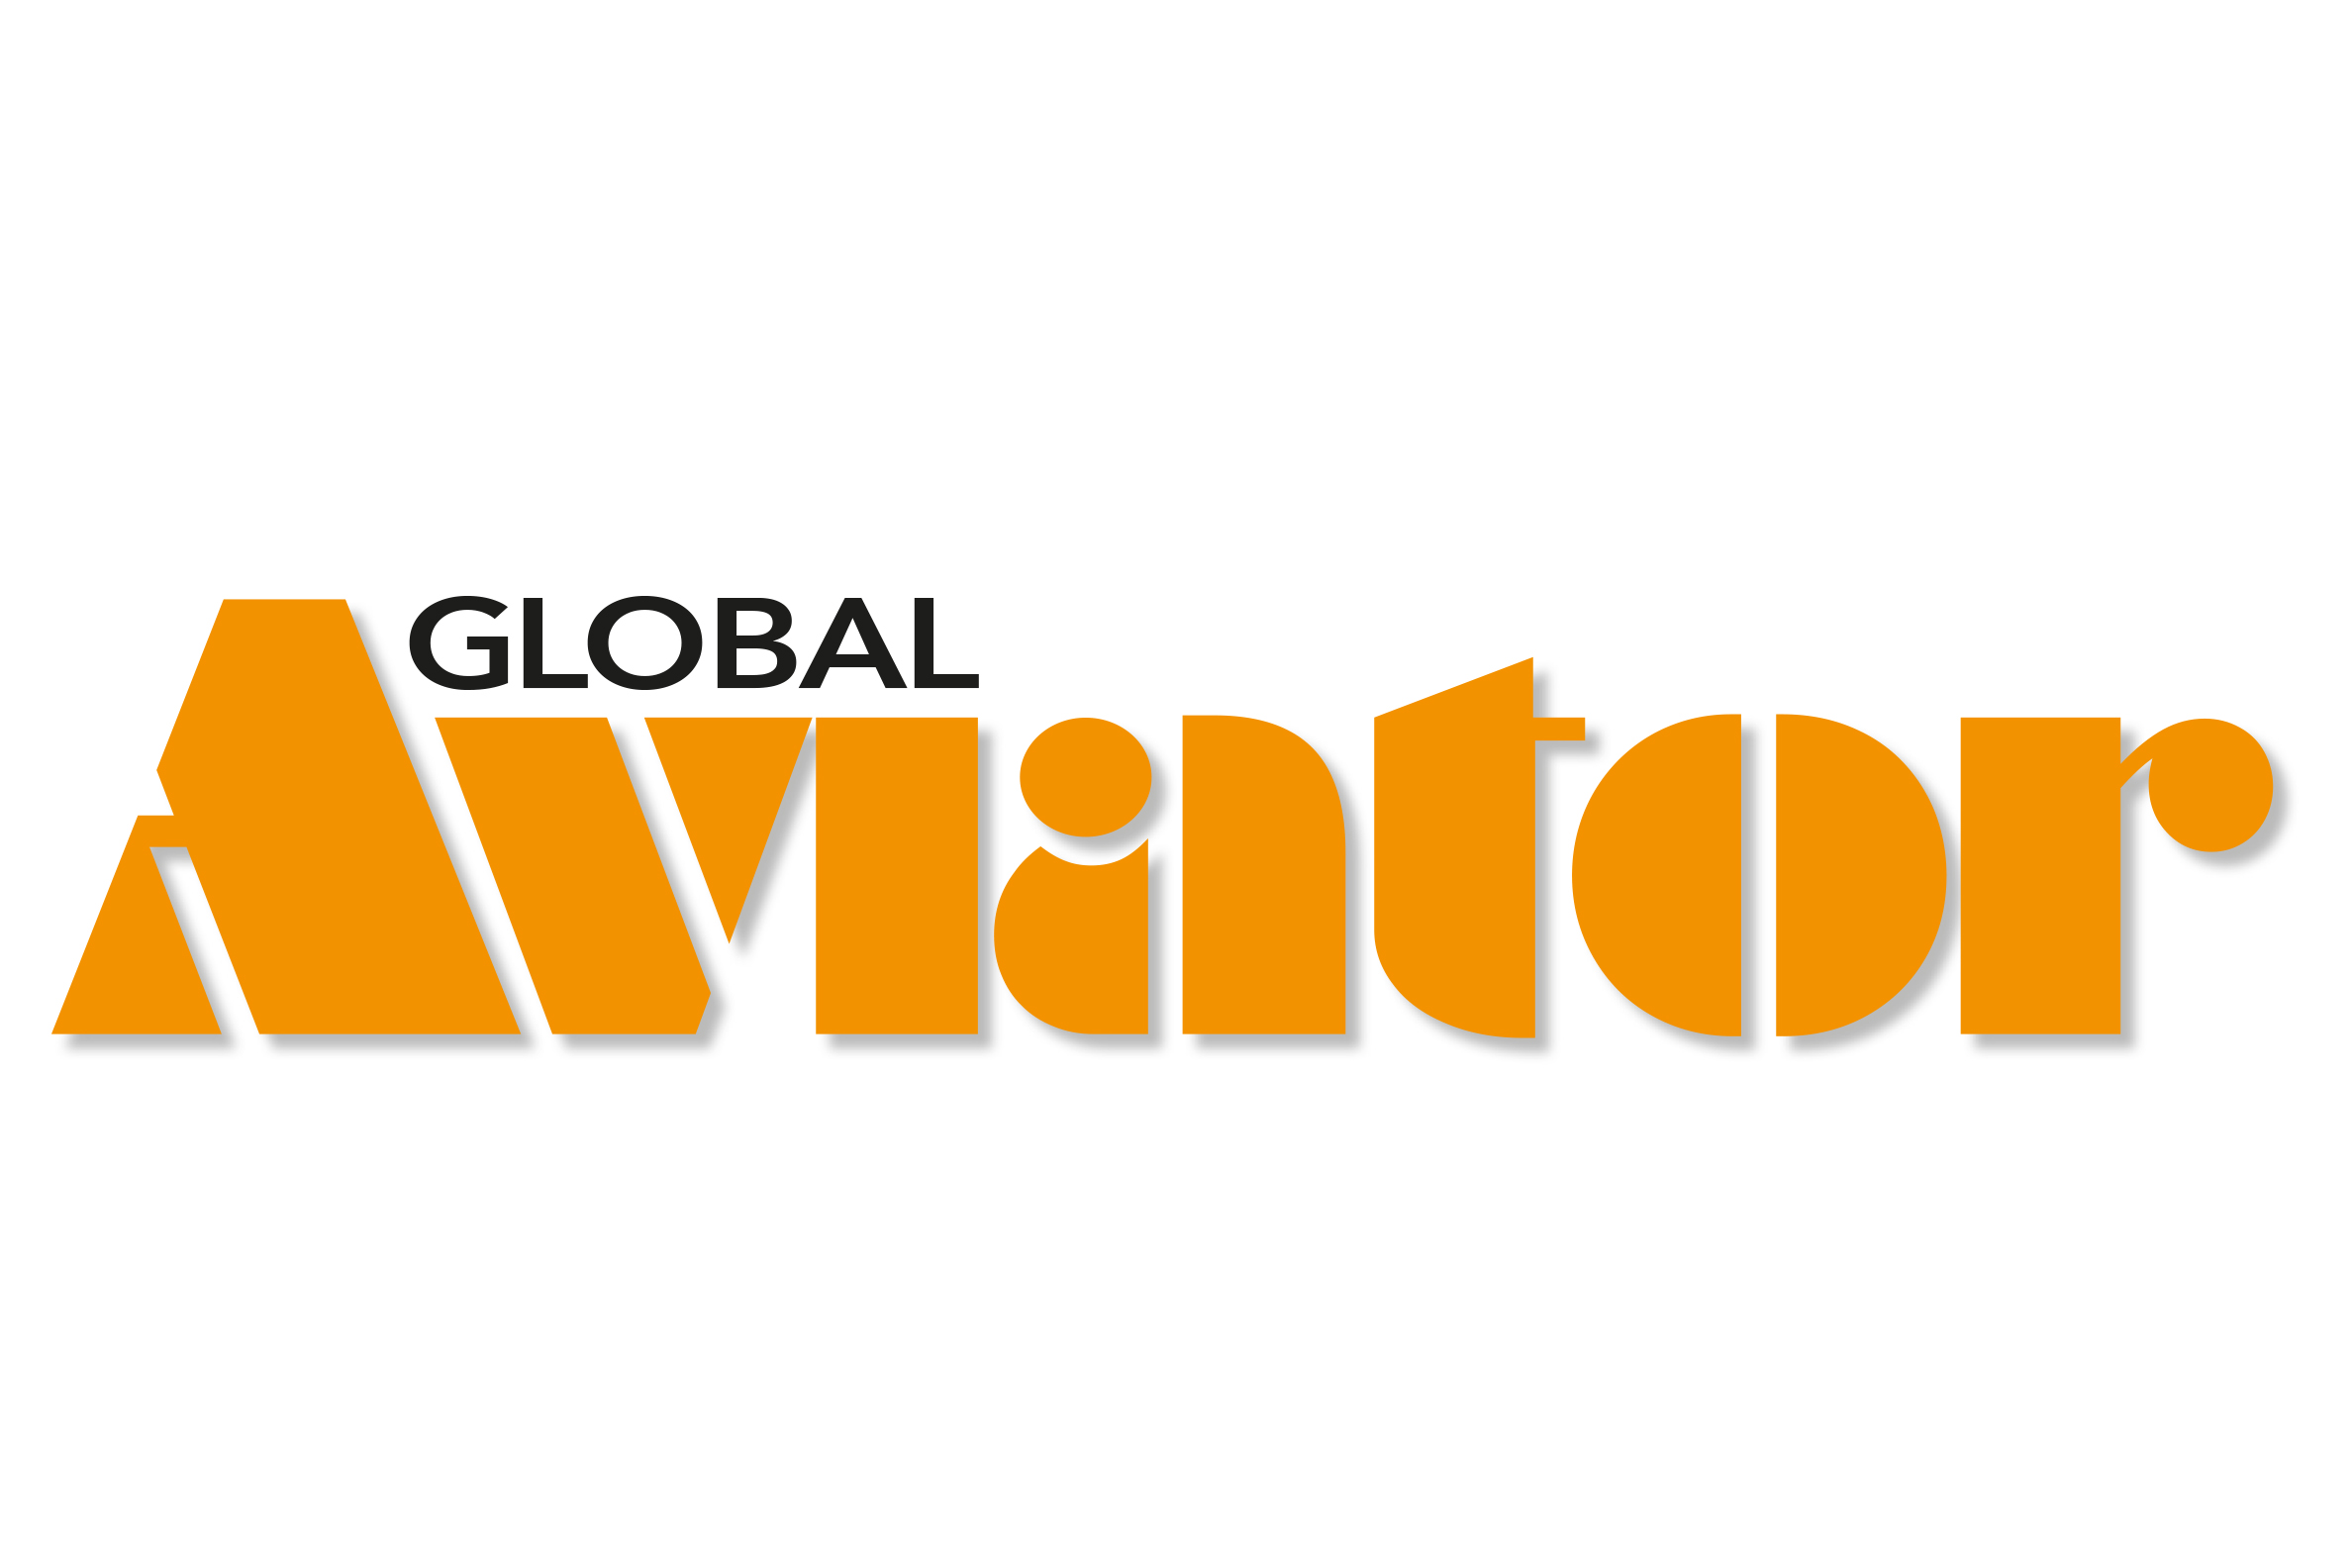 Global Aviator hi-res logo